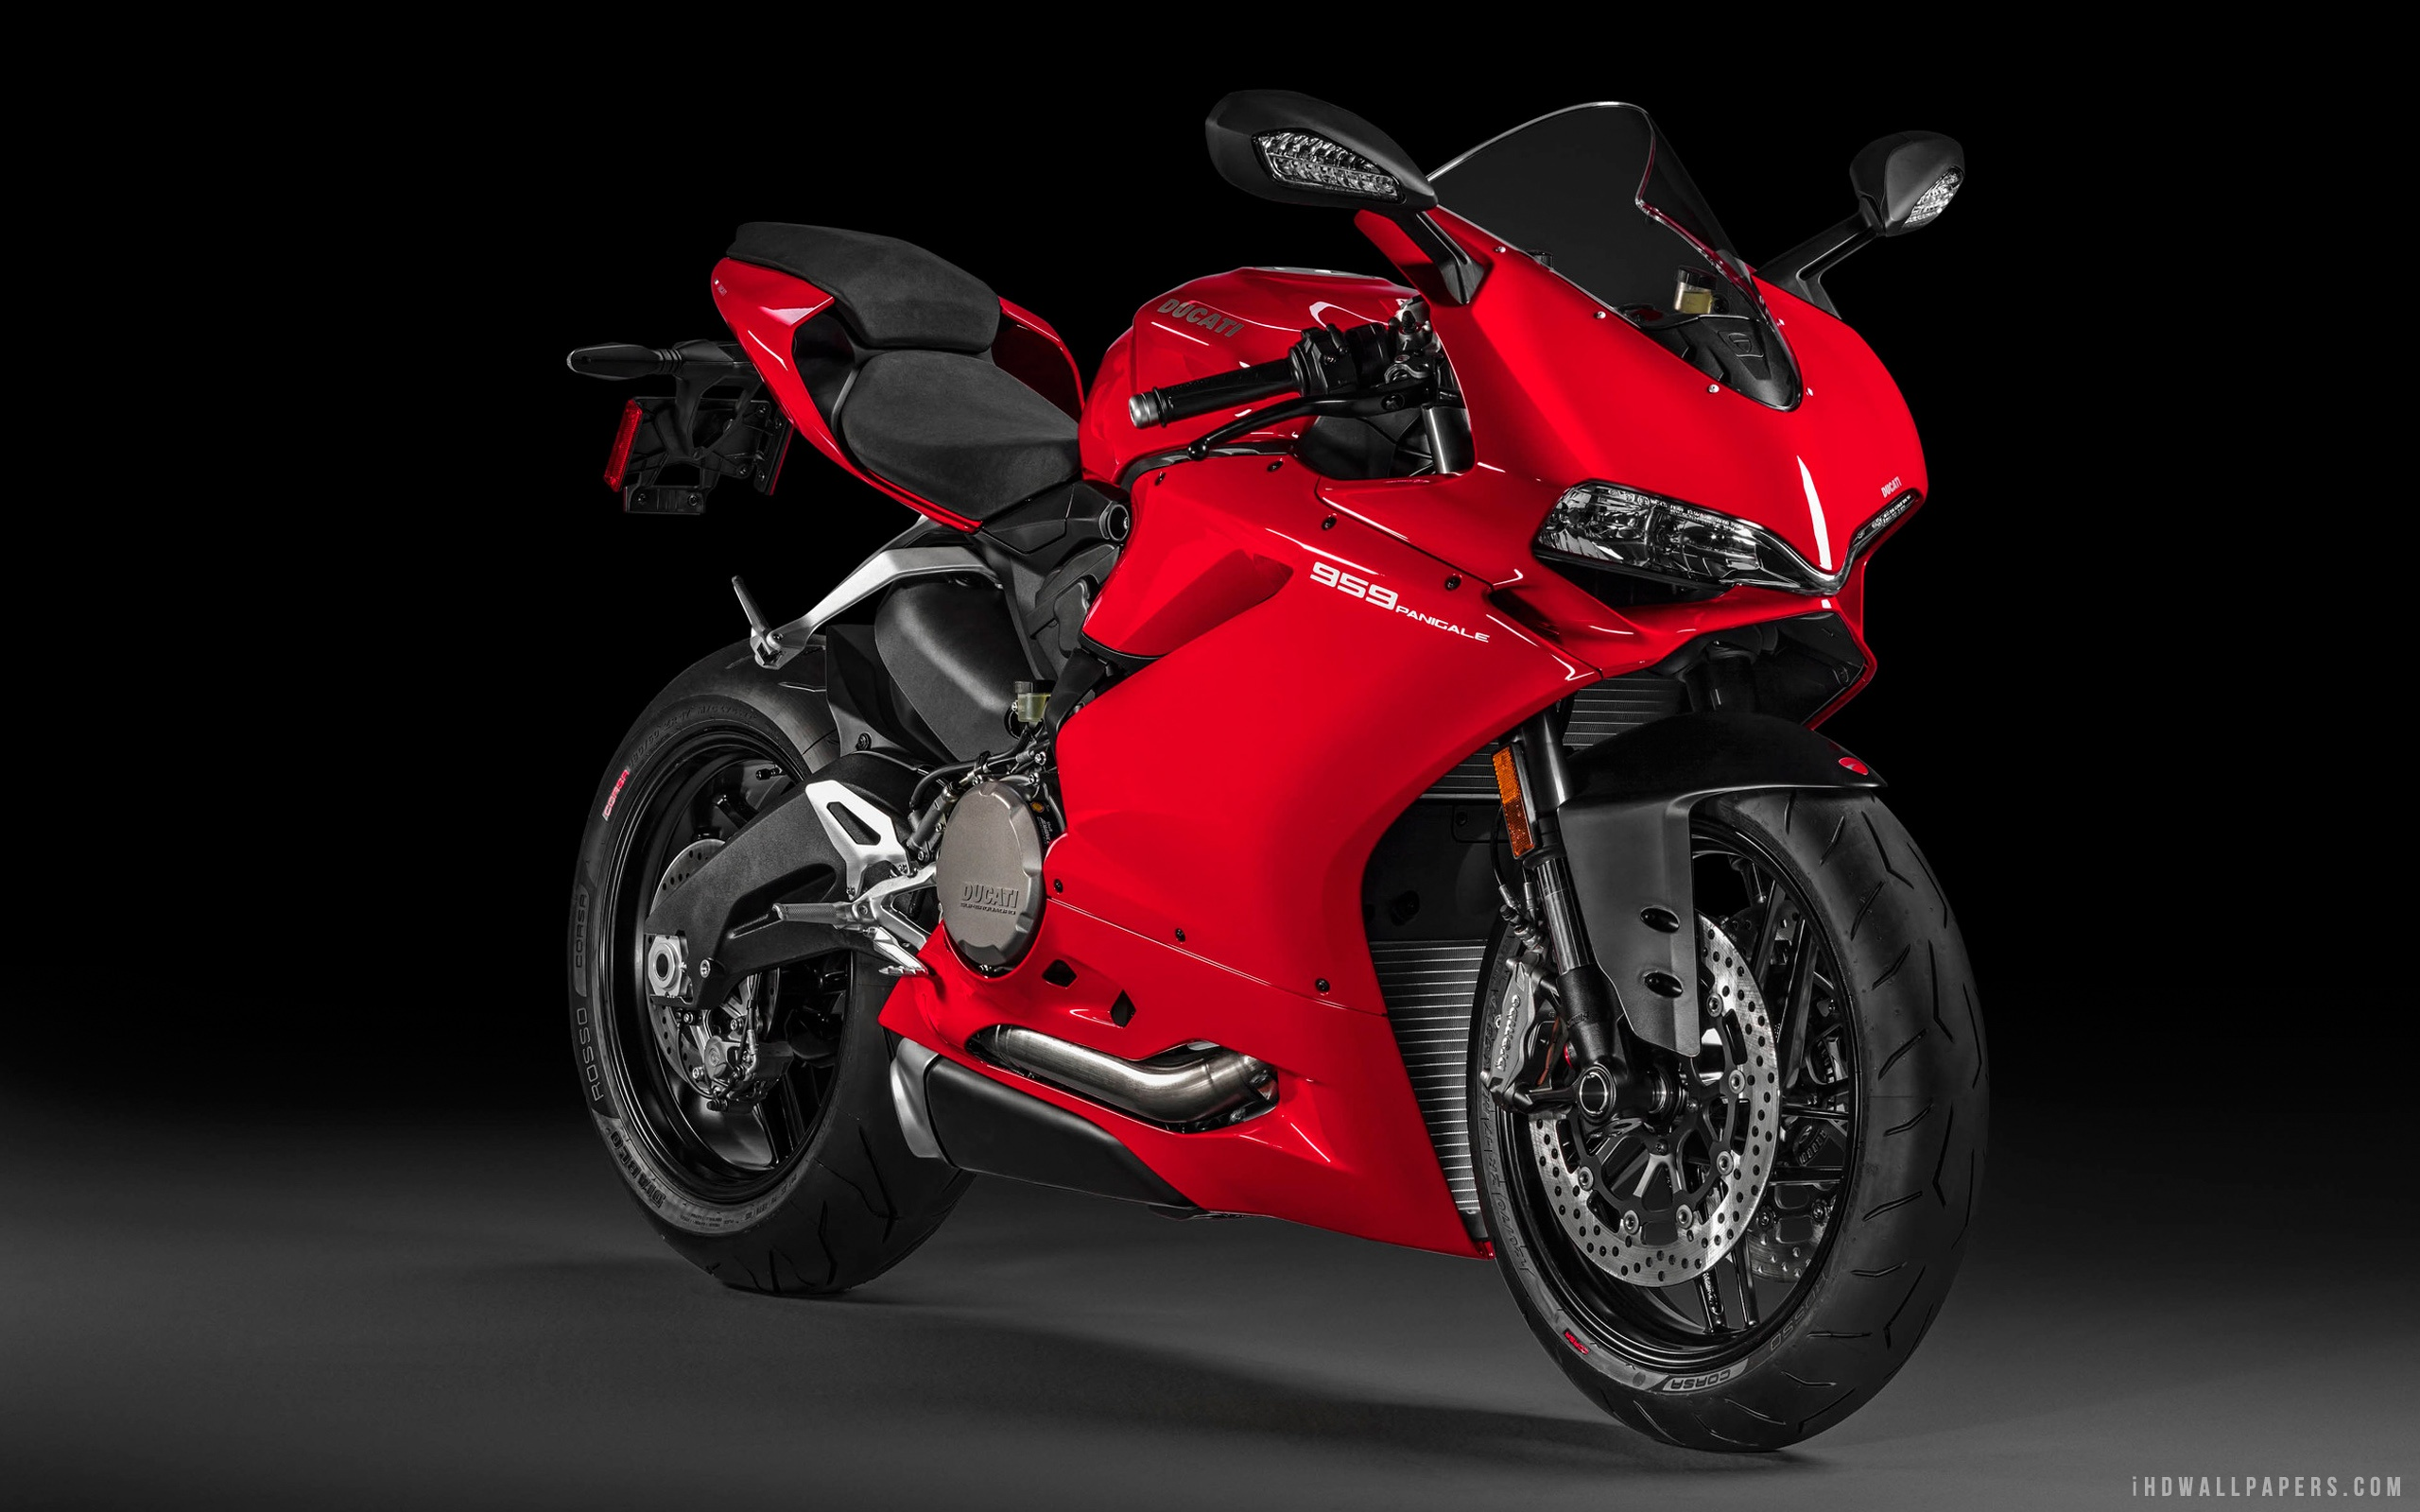 Ducati 959 Panigale 2016 HD Wallpaper IHD Wallpapers 2560x1600